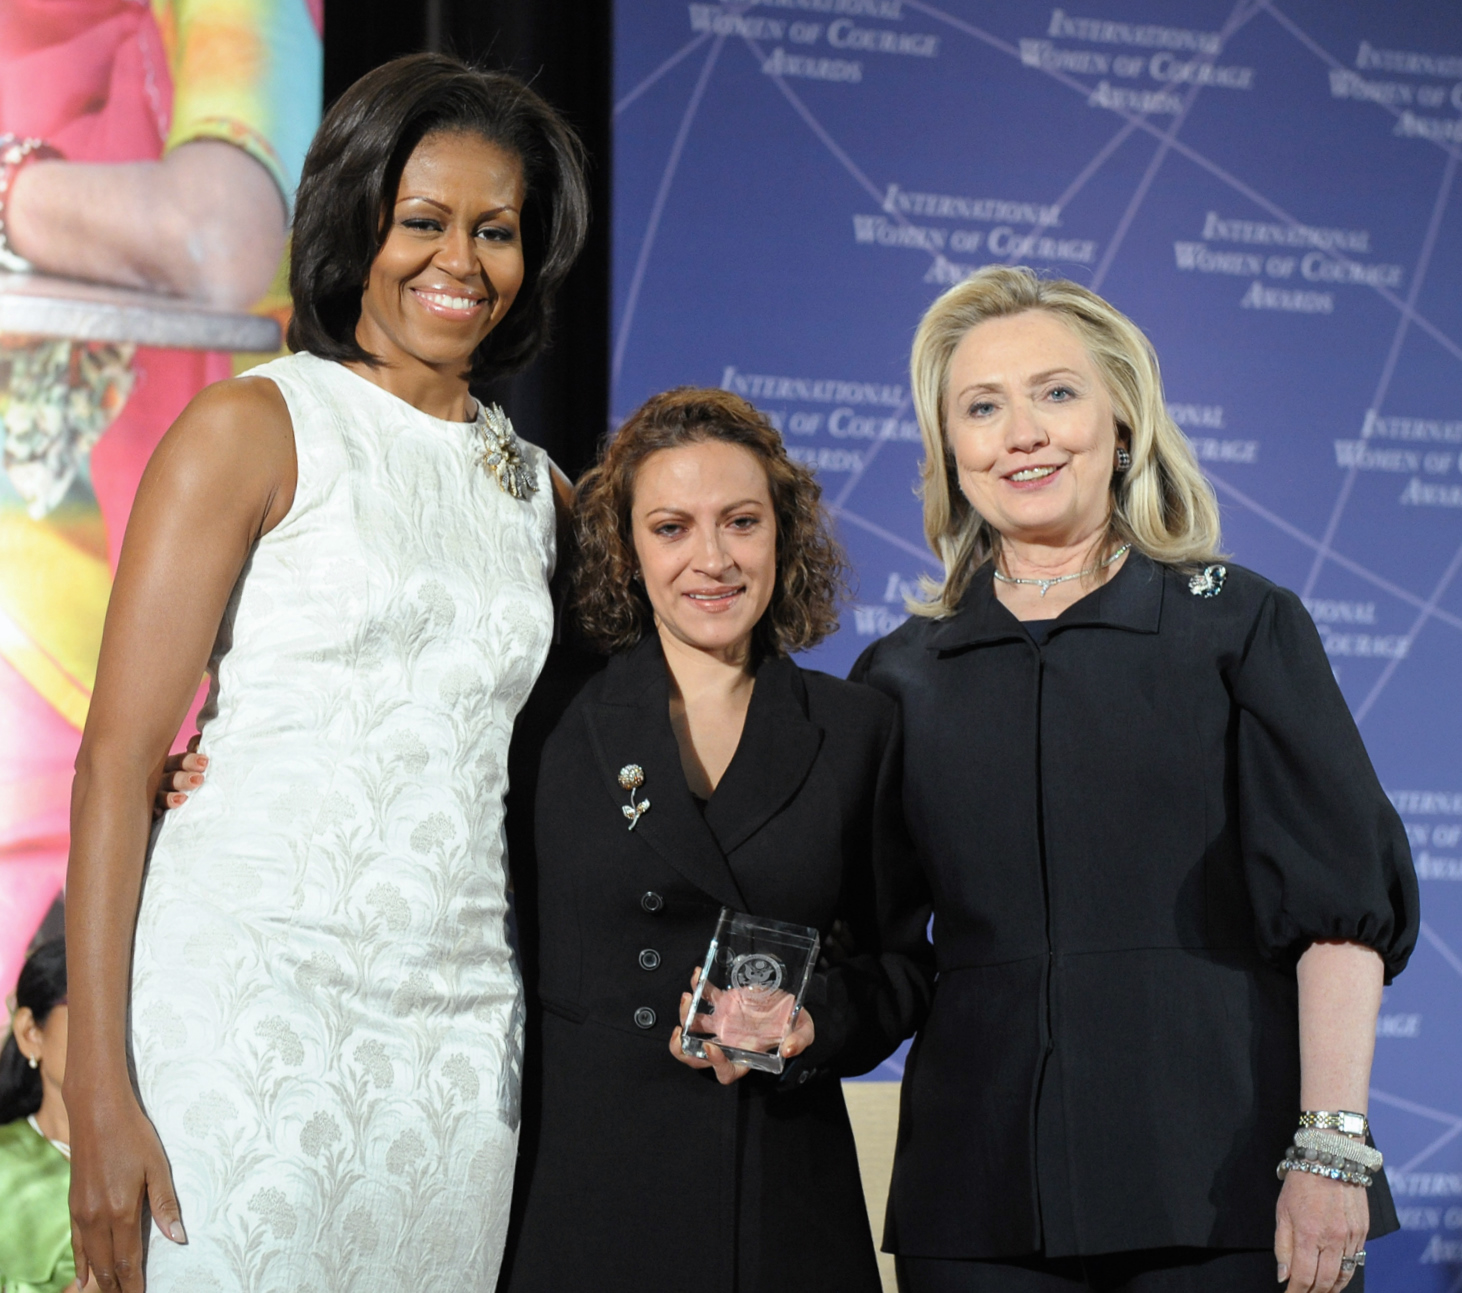 Speaking the unspeakable: Colombia's Jineth Bedoya Lima (center), the 2012 winner of the International Women of Courage Award, poses for a photo in March 2012 with then-U.S. Secretary of State Hillary Rodham Clinton (right) and first lady Michelle Obama. | WIKIPEDIA